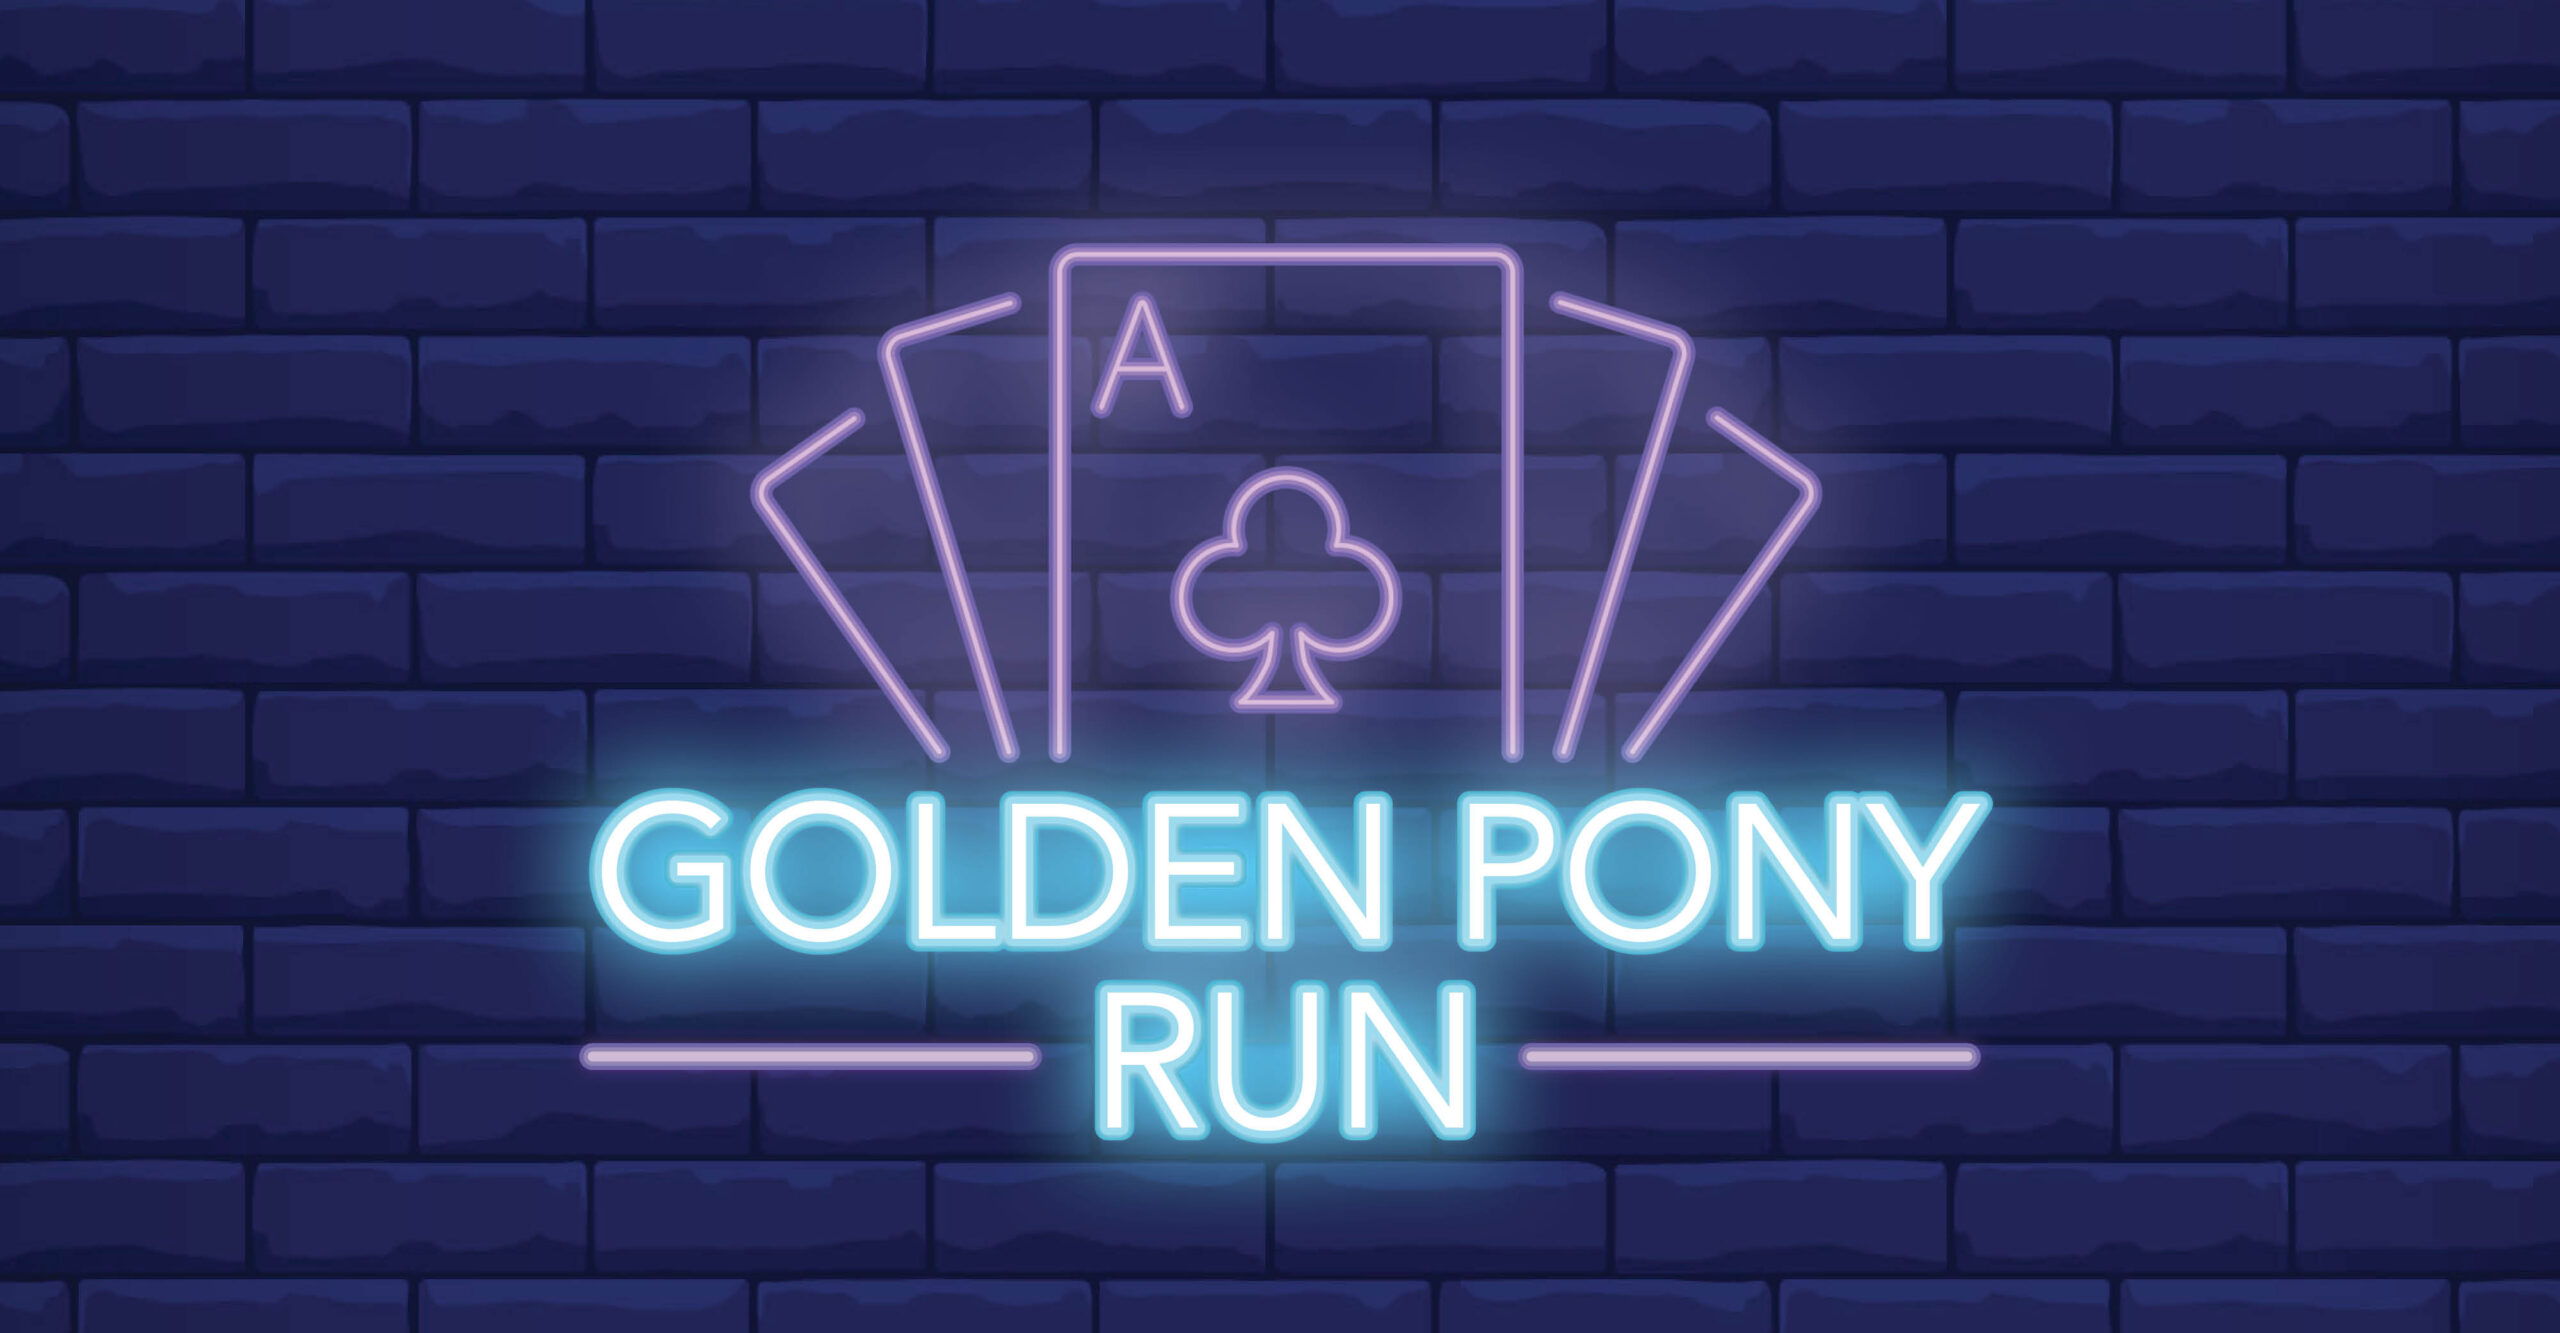 Golden Pony Run